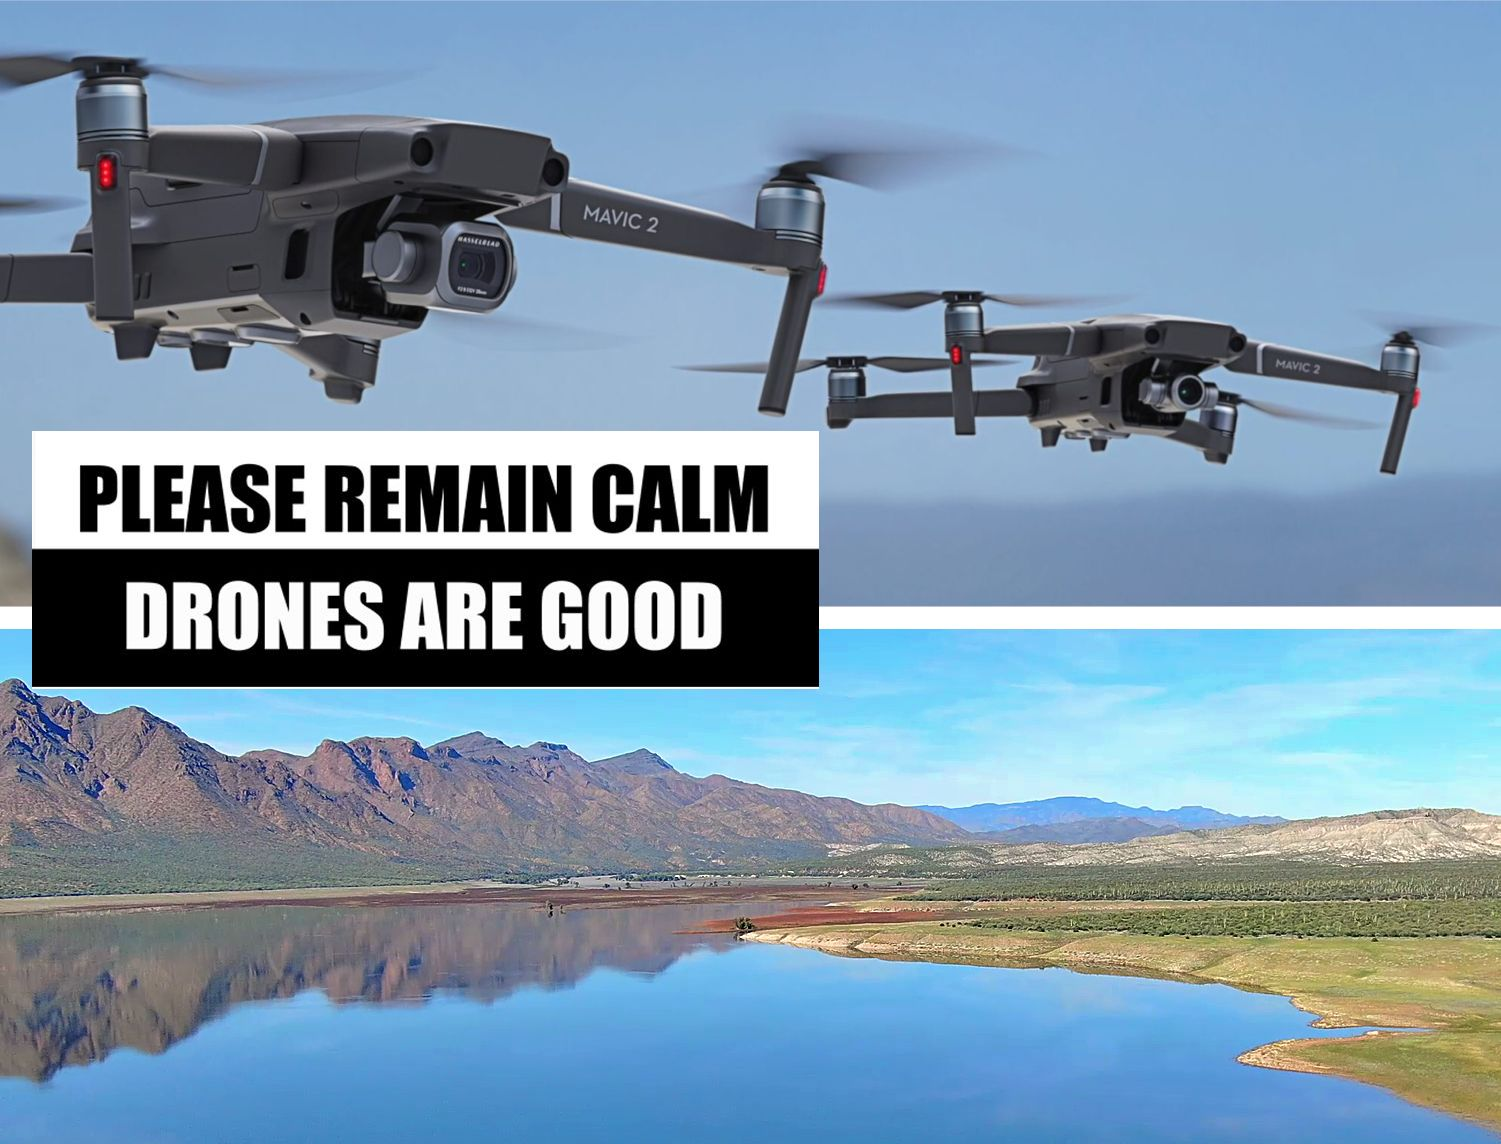 Drones Are Good